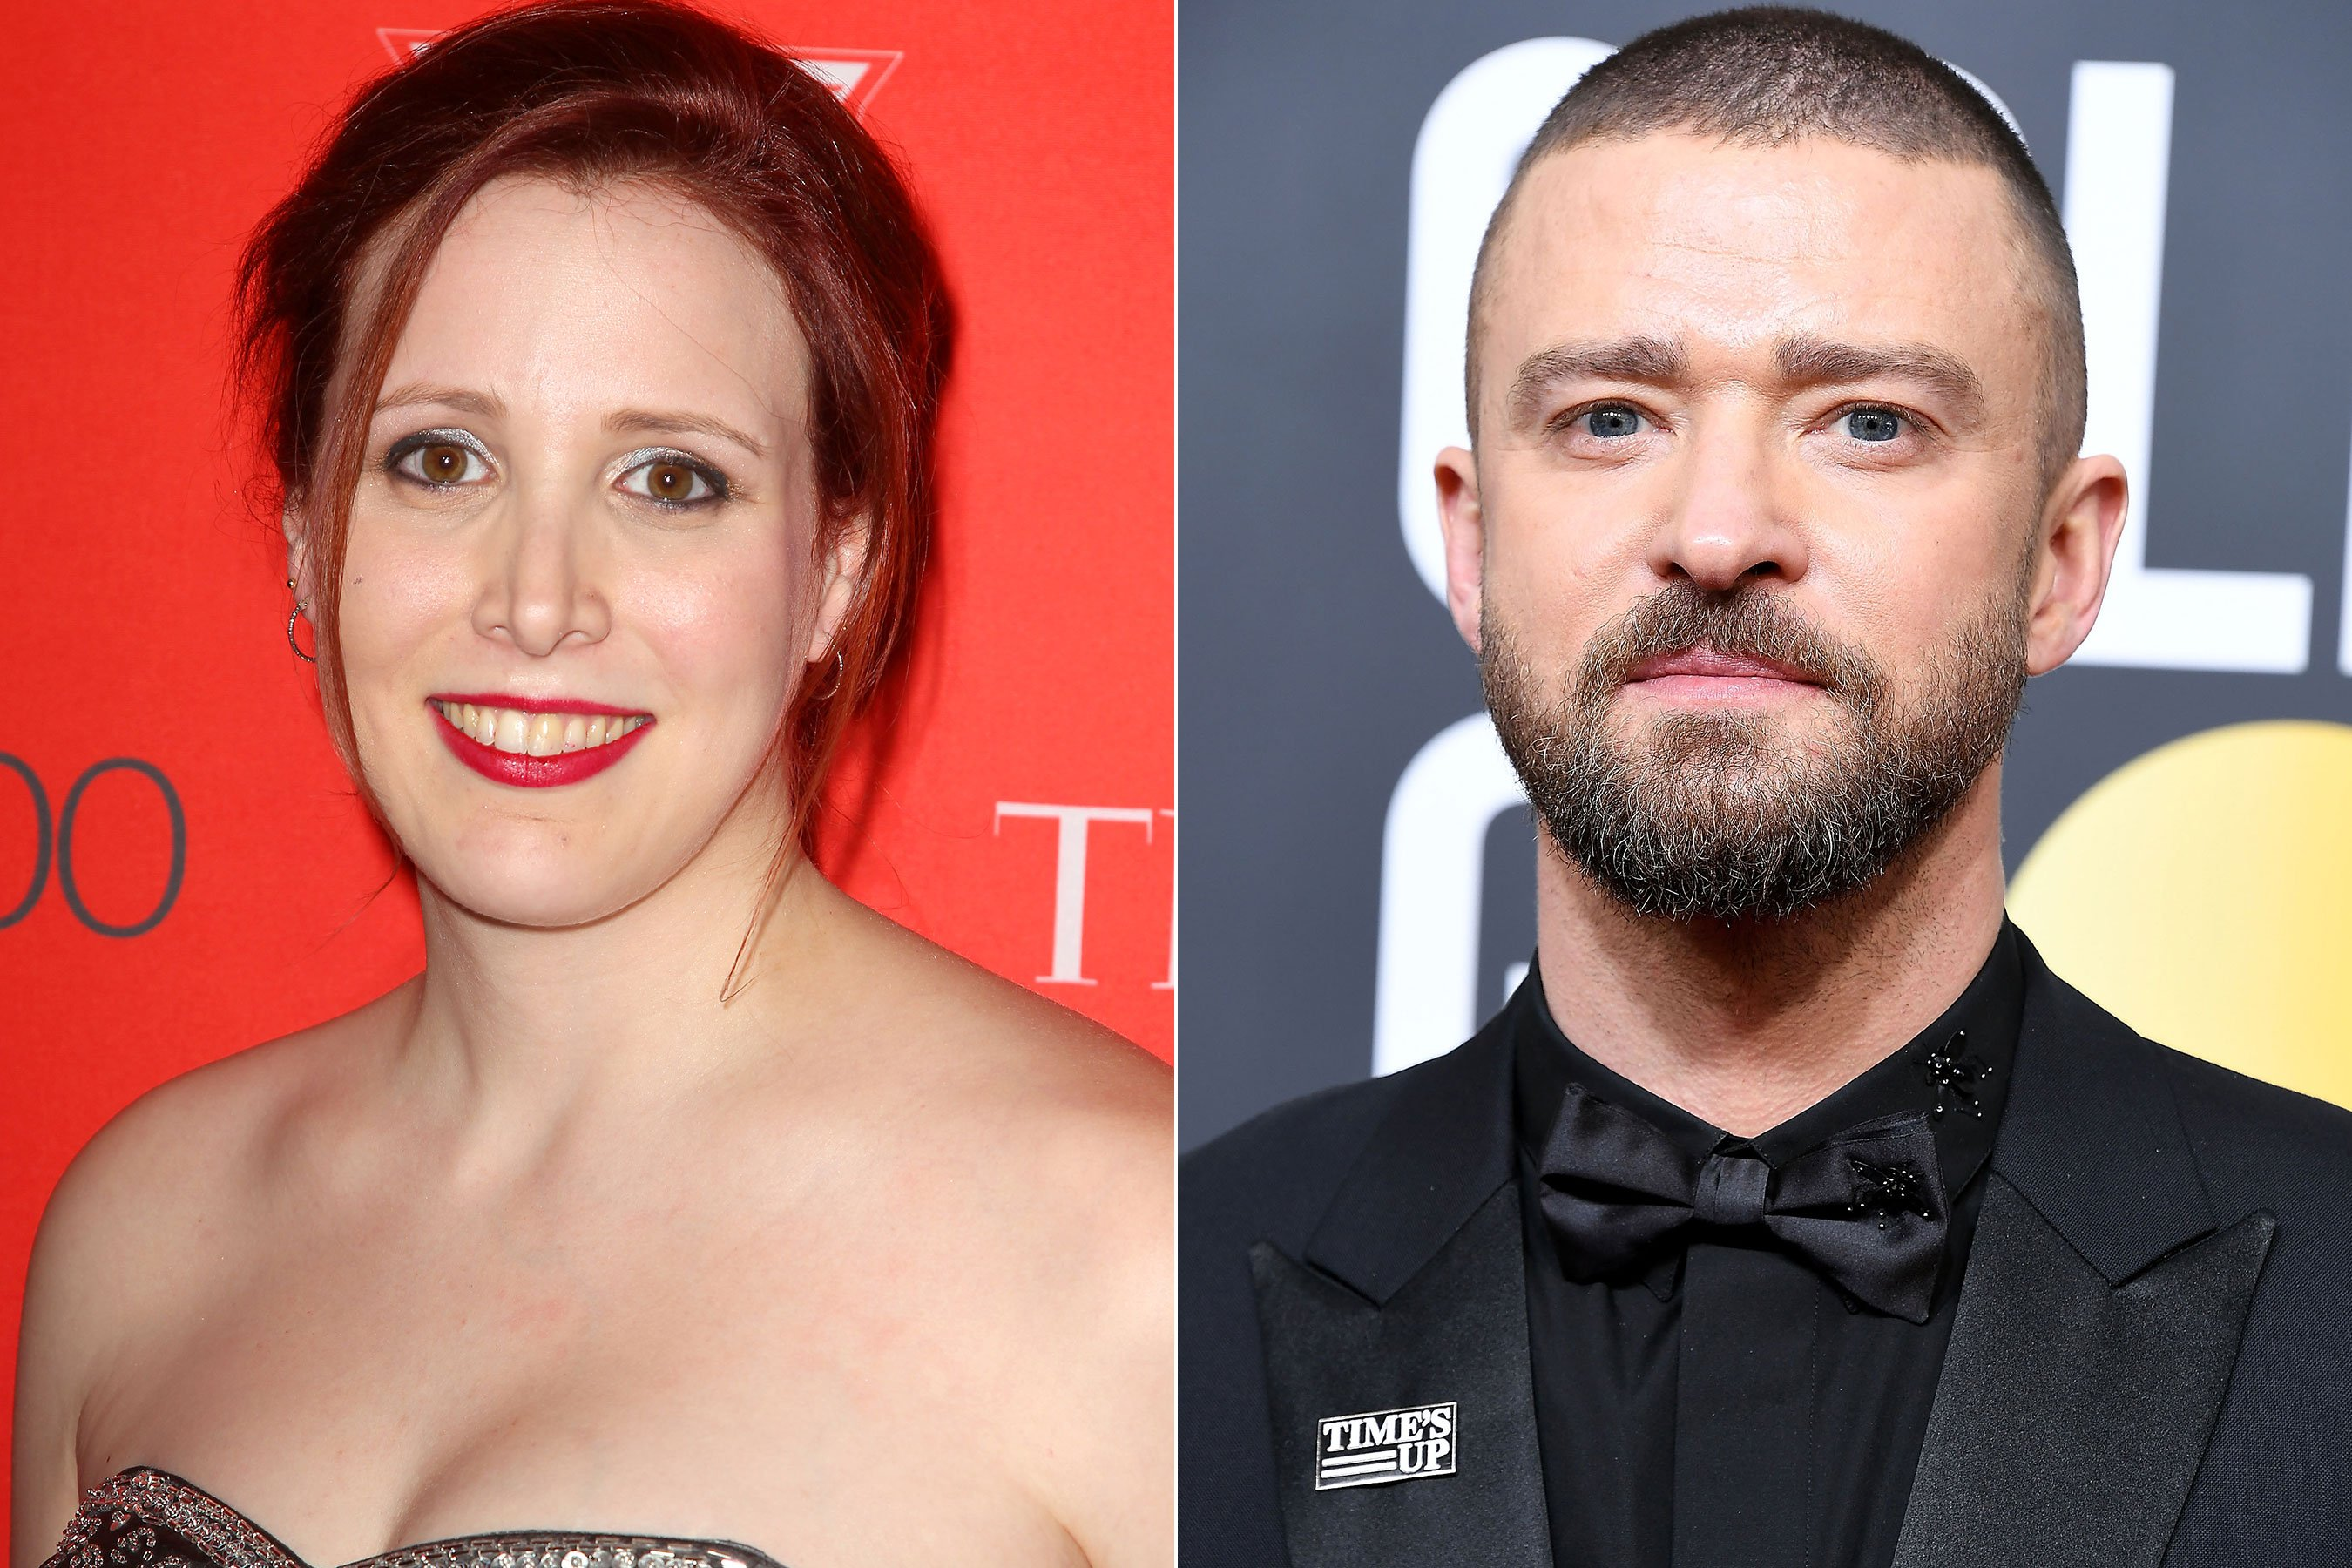 Dylan Farrow calls out Justin Timberlake for working with Woody Allen